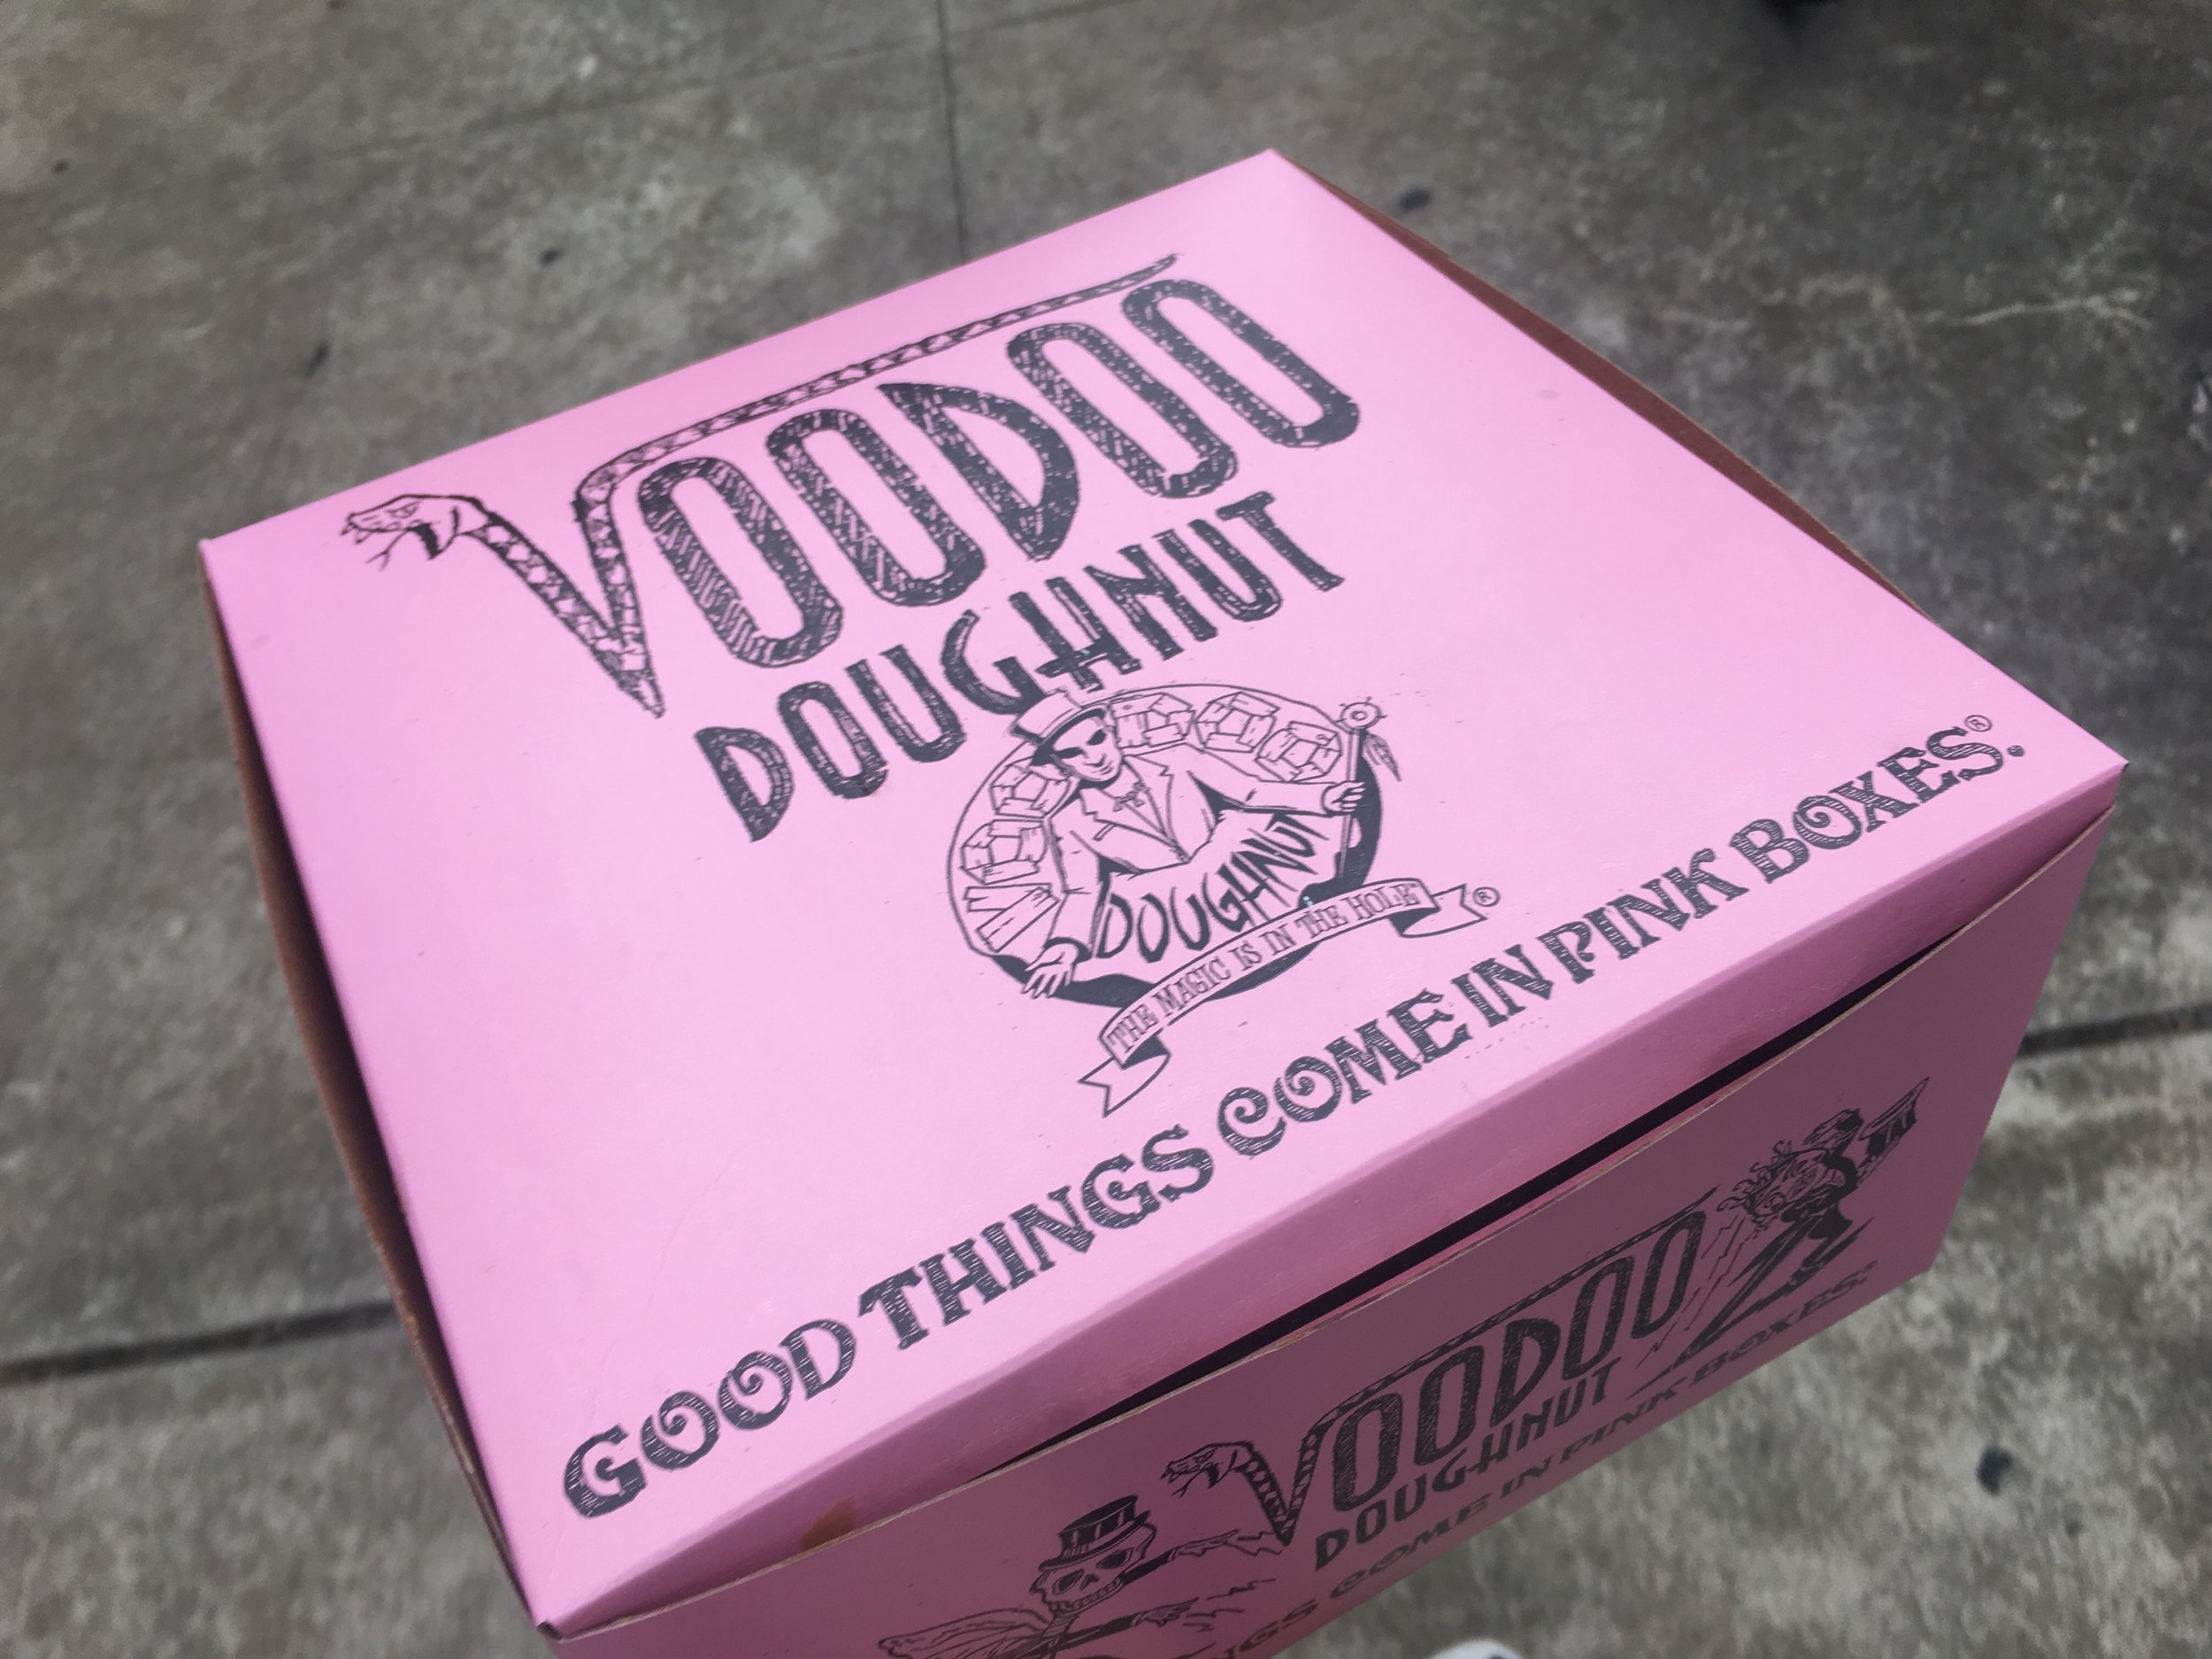 The famous Pink Box of Voodoo Doughnuts